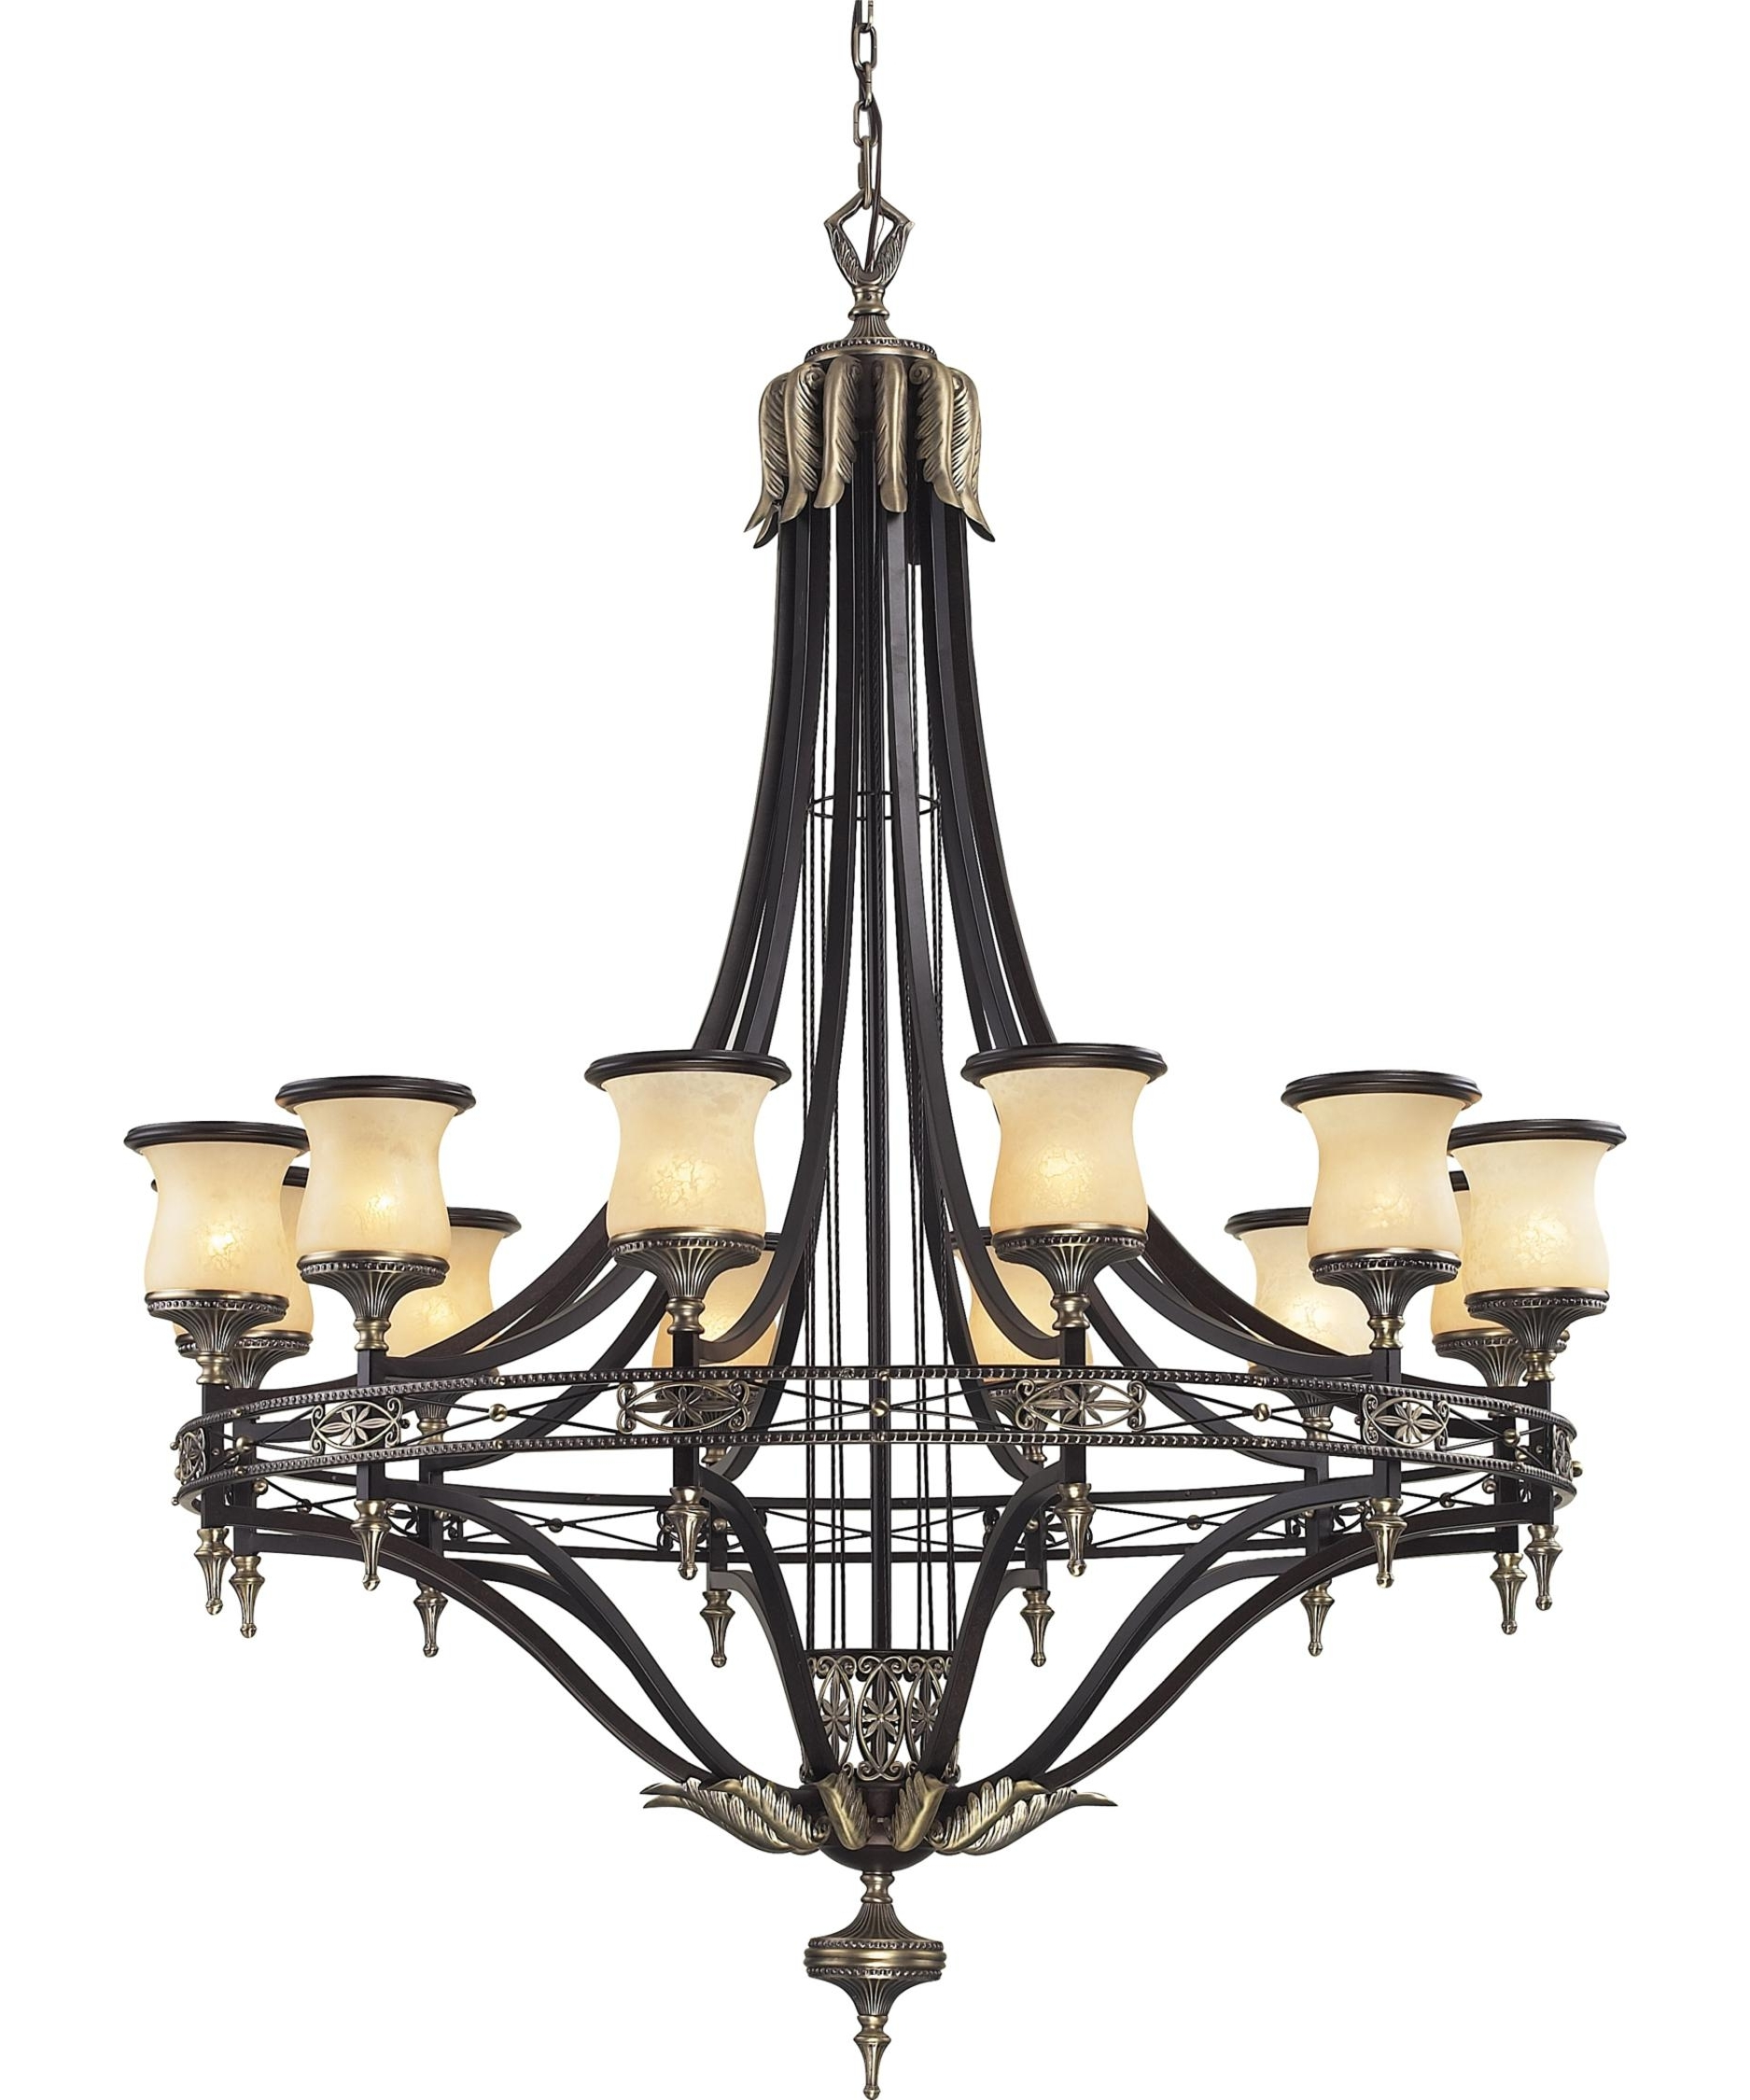 Most Current Georgian Chandeliers Intended For Elk Lighting 2434 12 Georgian Court 48 Inch Wide 12 Light Chandelier (View 12 of 15)